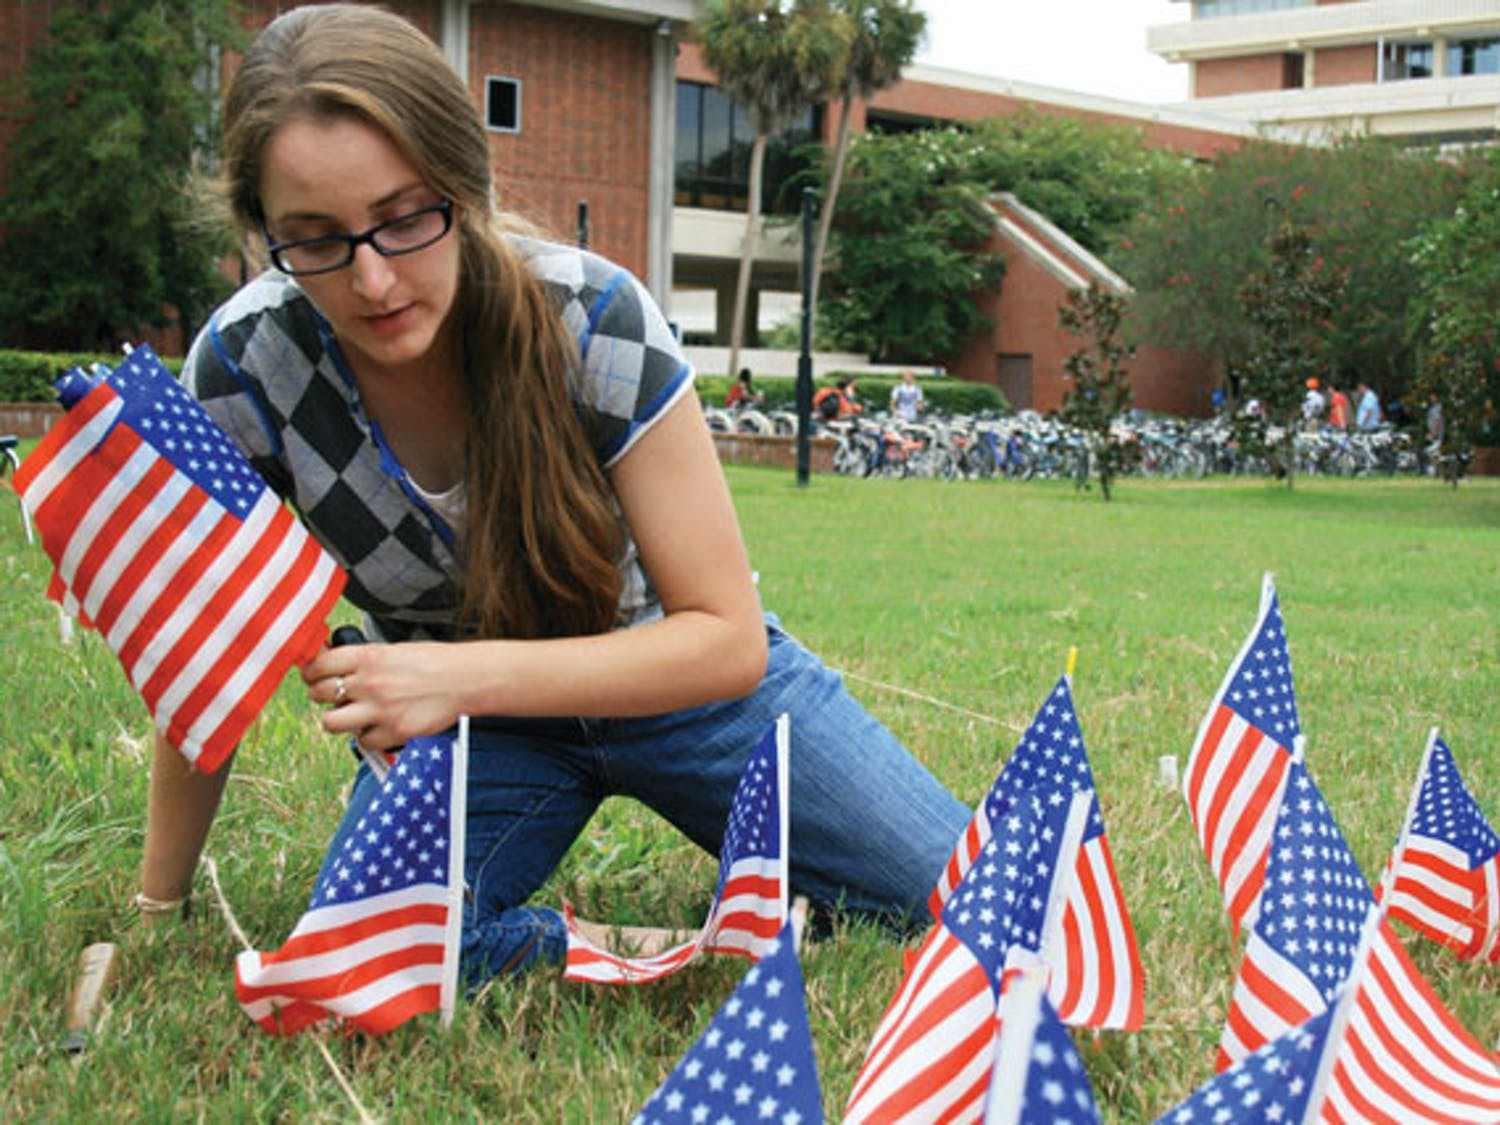 Graduate student Jean Morrow places exactly 2,977 miniature flags on the lawn of the Reitz Union lawn to honor each person who died on 9/11, marking the 10th anniversary of the national tragedy. Morrow's display is part of the 9/11: Never Forget Project at UF.